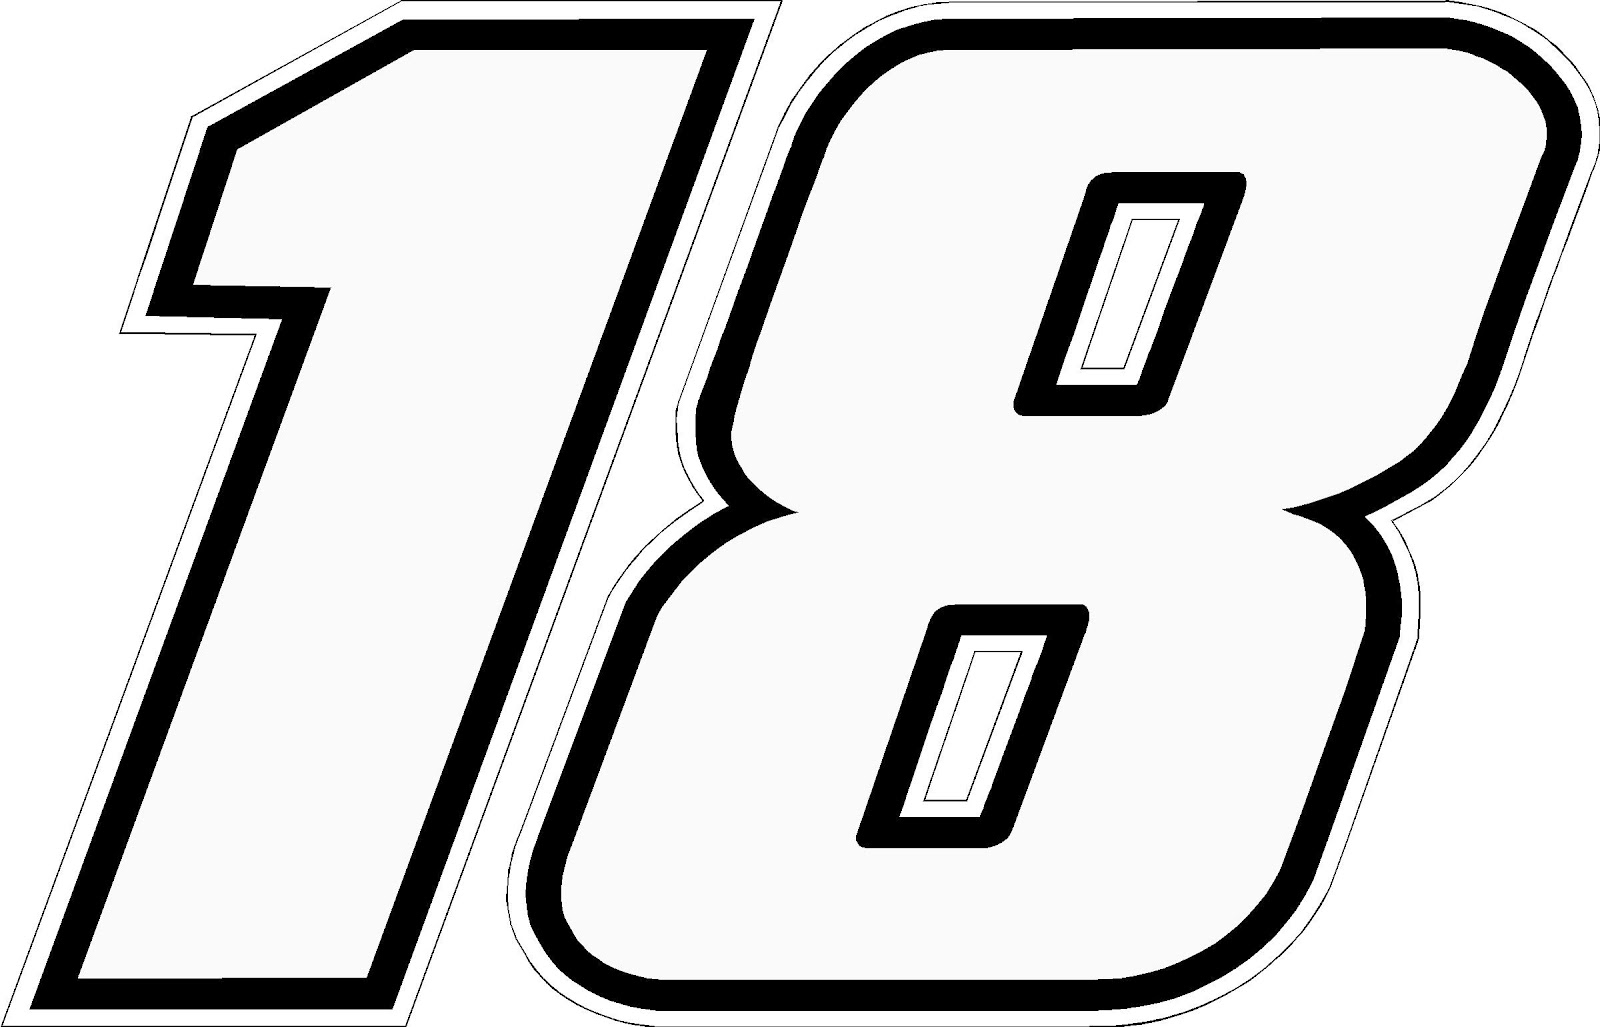 Shelby together with Joey Logano Car Coloring Pages Sketch Templates further Nascar Race Car Coloring Page in addition Nascar Coloring Page Coloring Pages Awesome Printable Mustang Coloring Pages For Kids For Coloring Nascar Coloring Pages Dale Earnhardt Jr additionally Dale Earnhardt Jr. on kyle busch